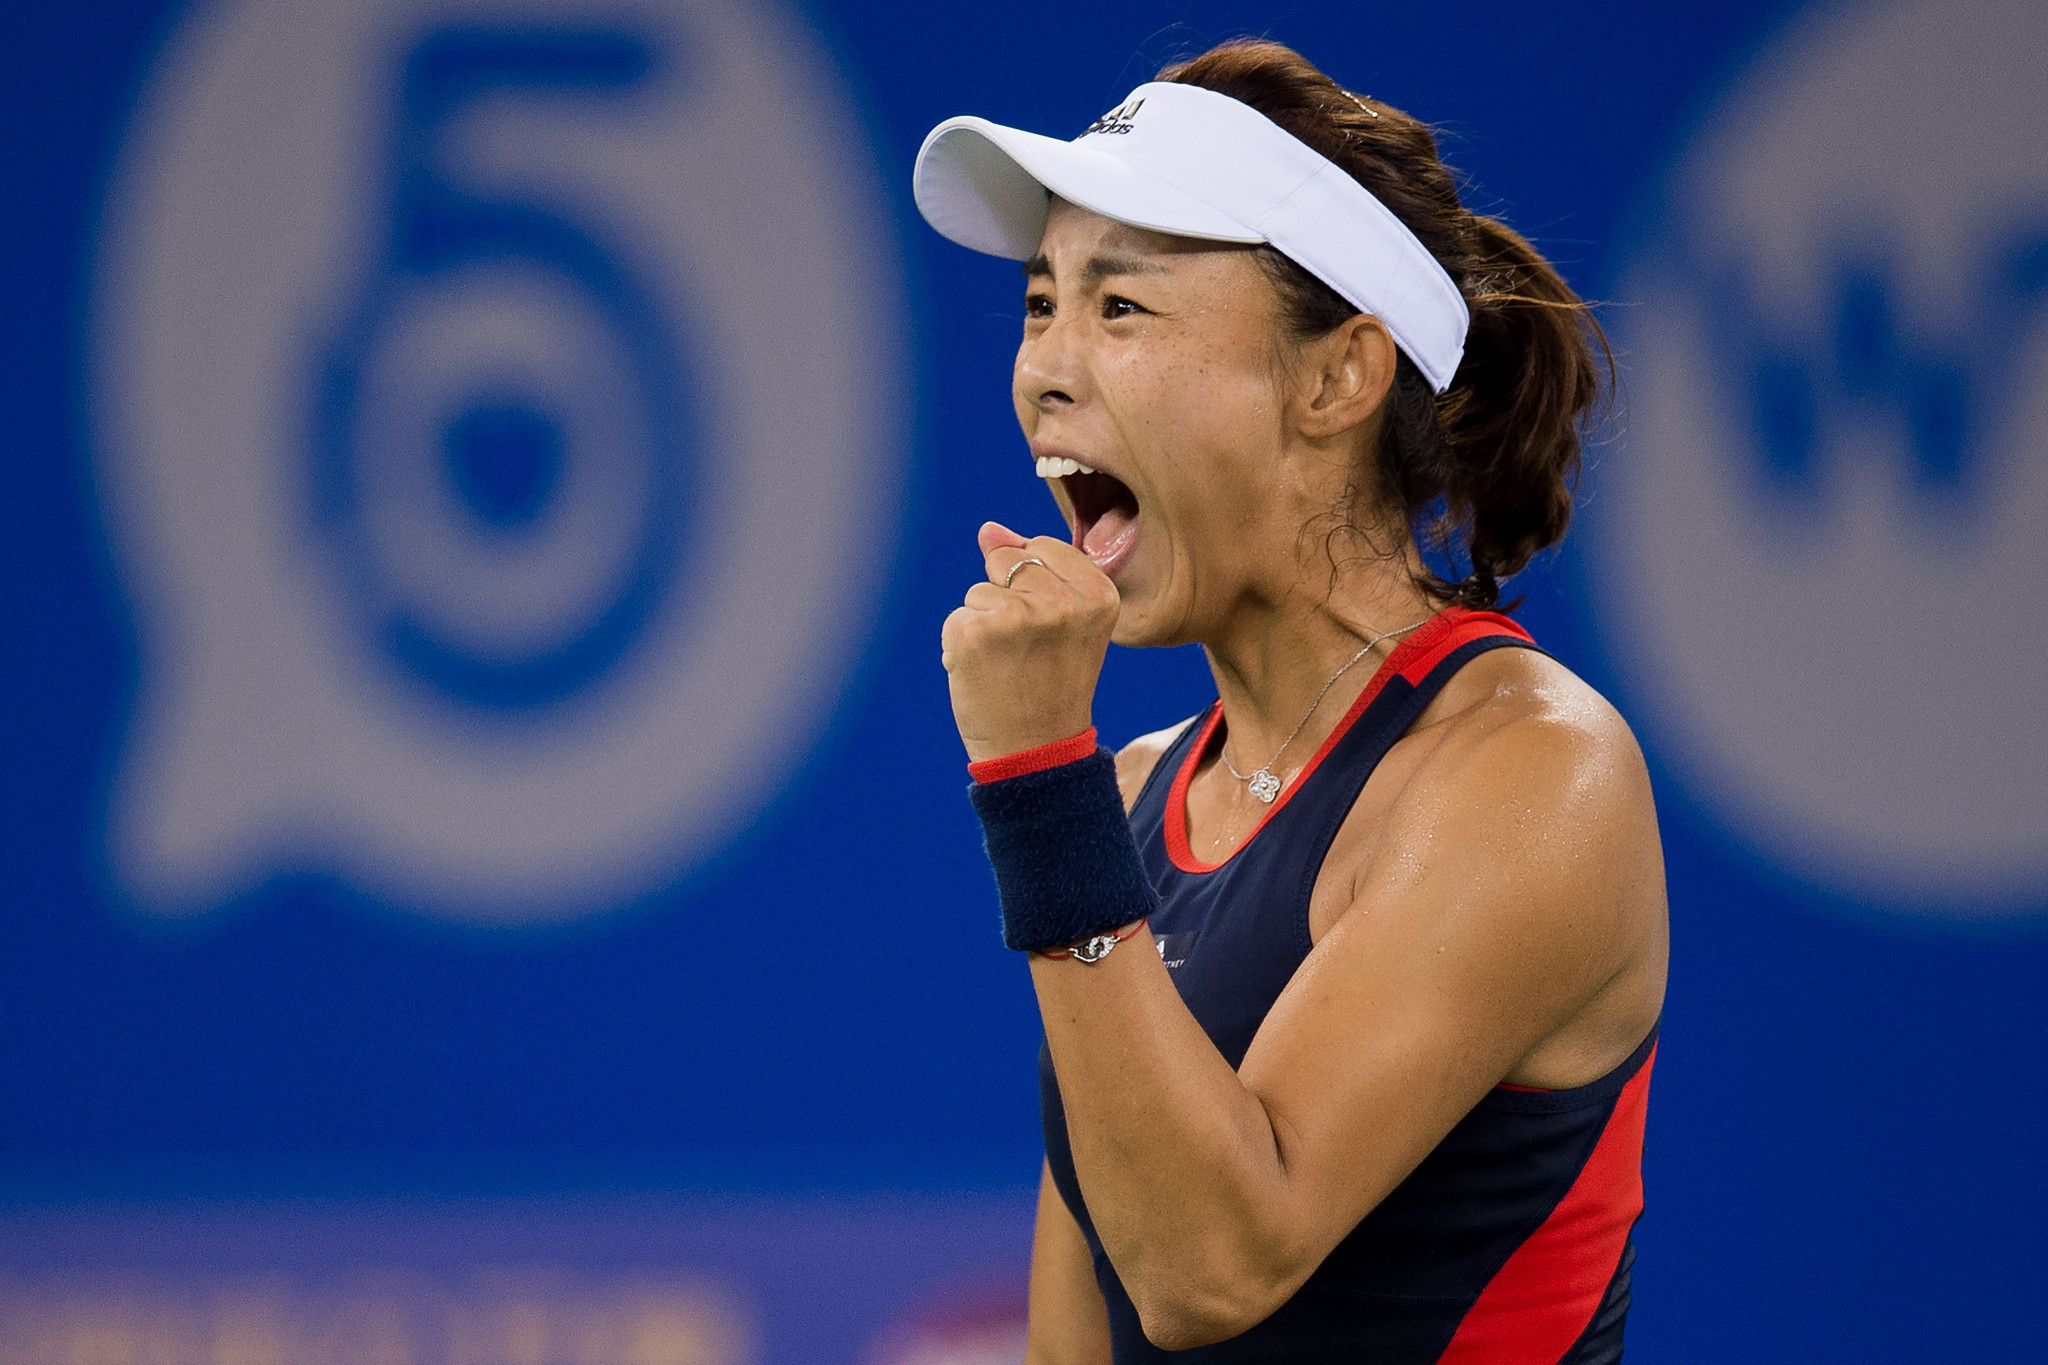 Wang Qiang of China celebrates beating Australian Daria Gavrilova at the Wuhan Open ©Getty Images